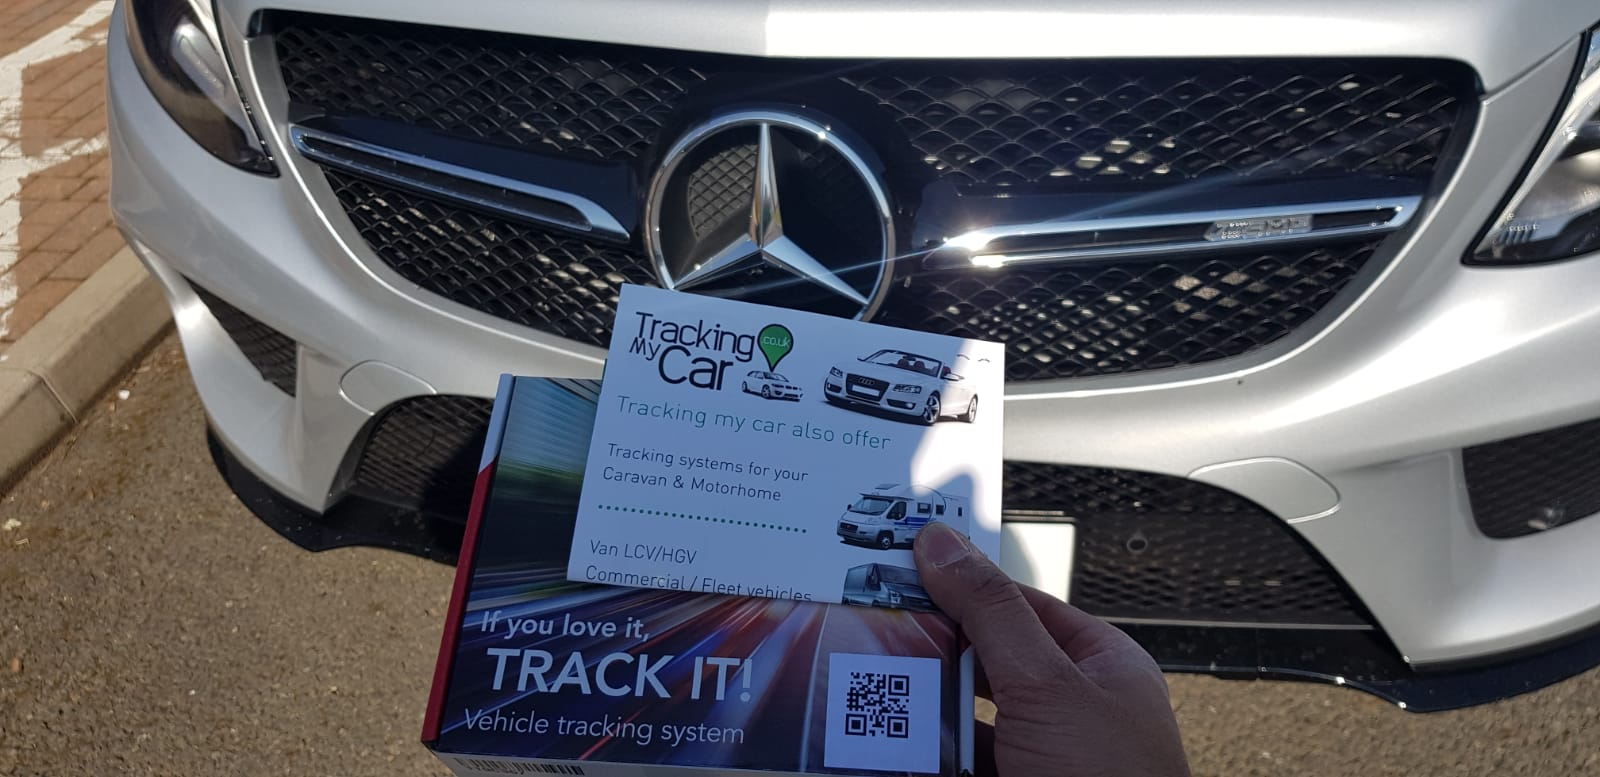 Tracker S5 Plus Category S5 Vts Tracking System